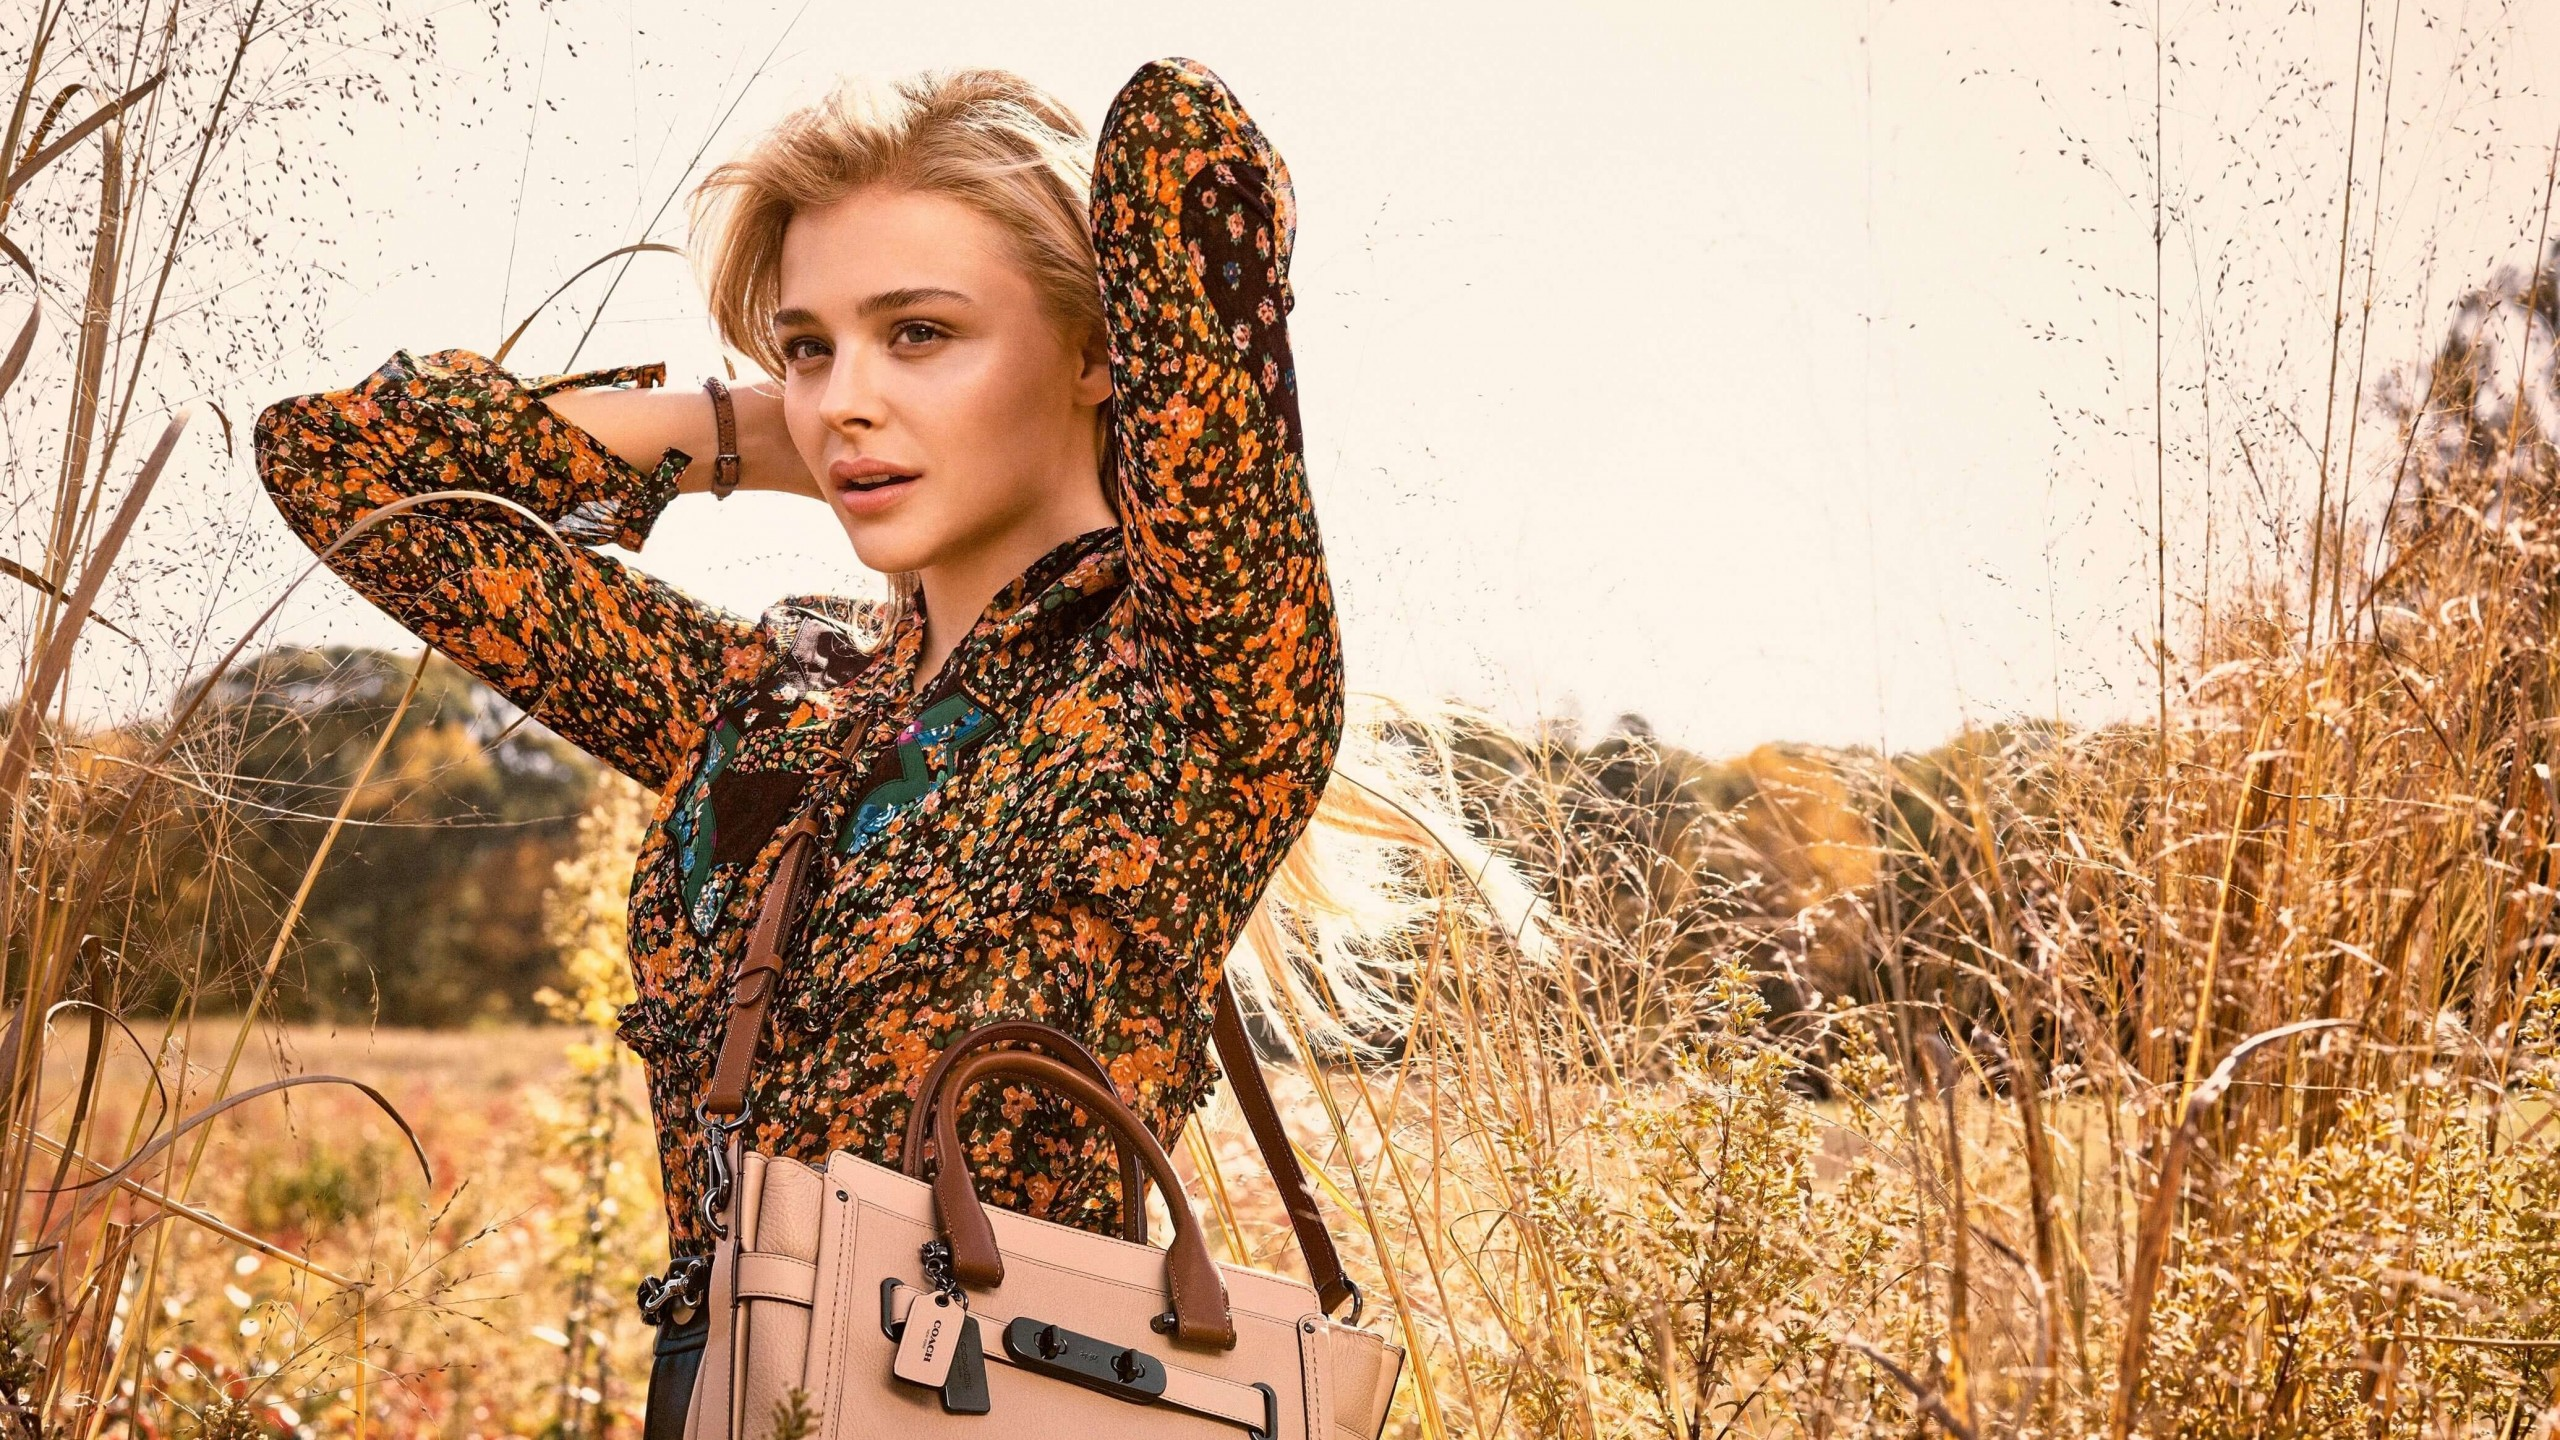 Chloe Moretz Coach Spring 2016 Campaign Wallpaper for Social Media YouTube Channel Art